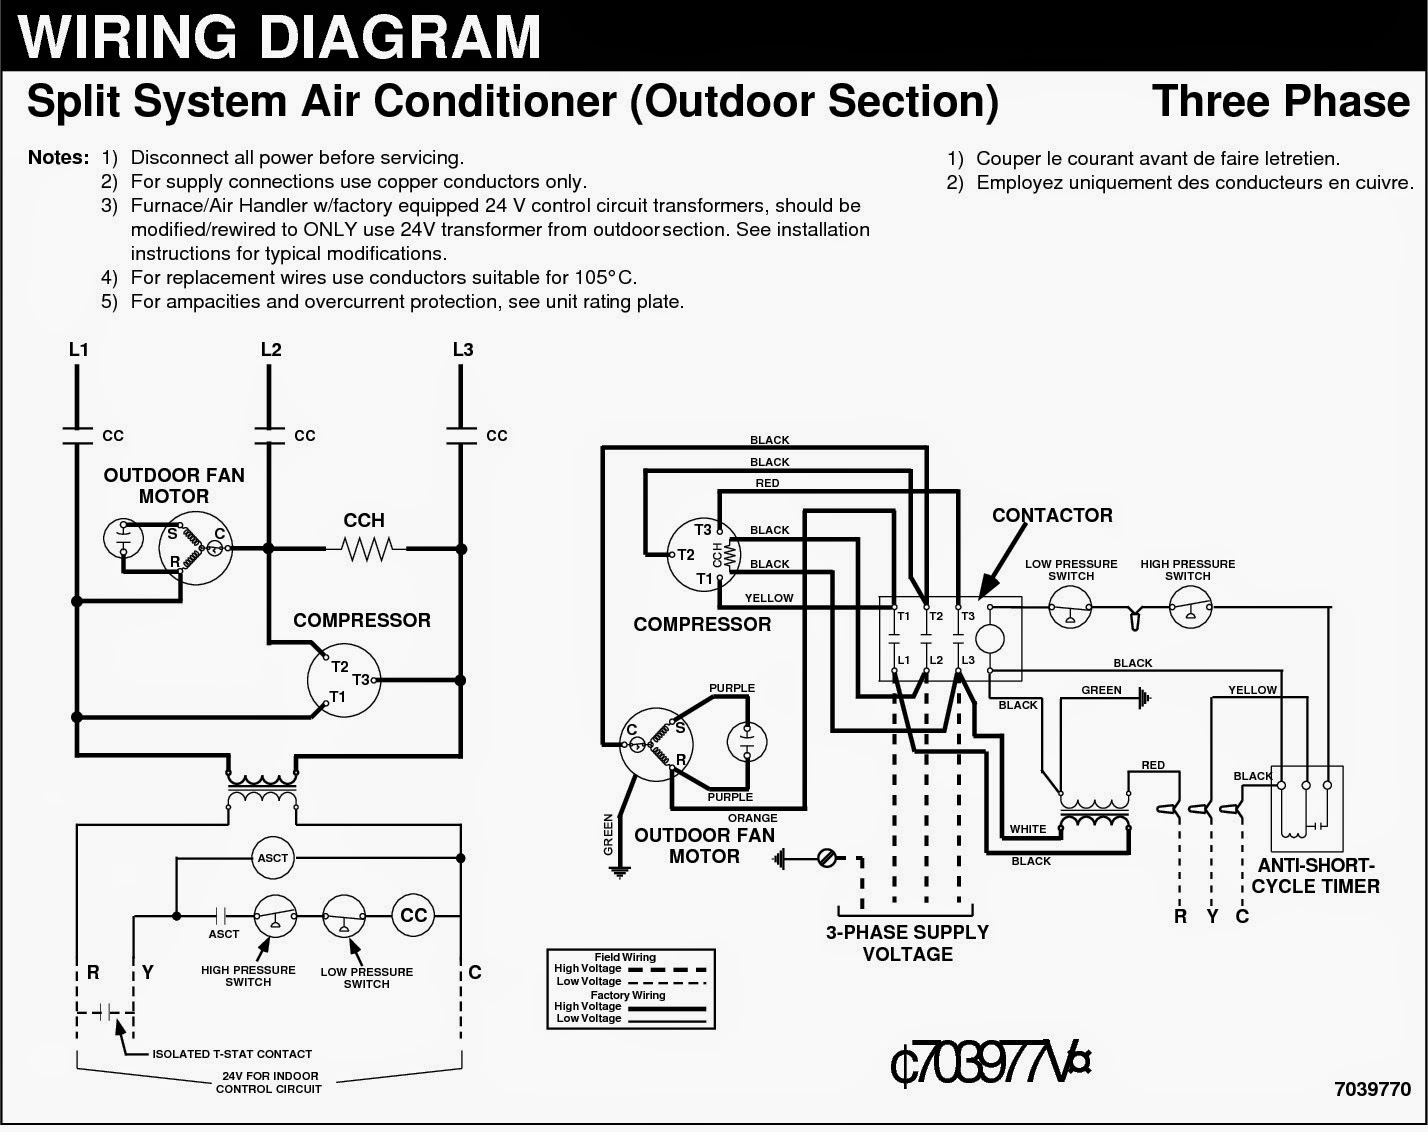 3+phase ac wire diagram fridge wire diagram \u2022 wiring diagrams j squared co outdoor light wiring diagram at bakdesigns.co